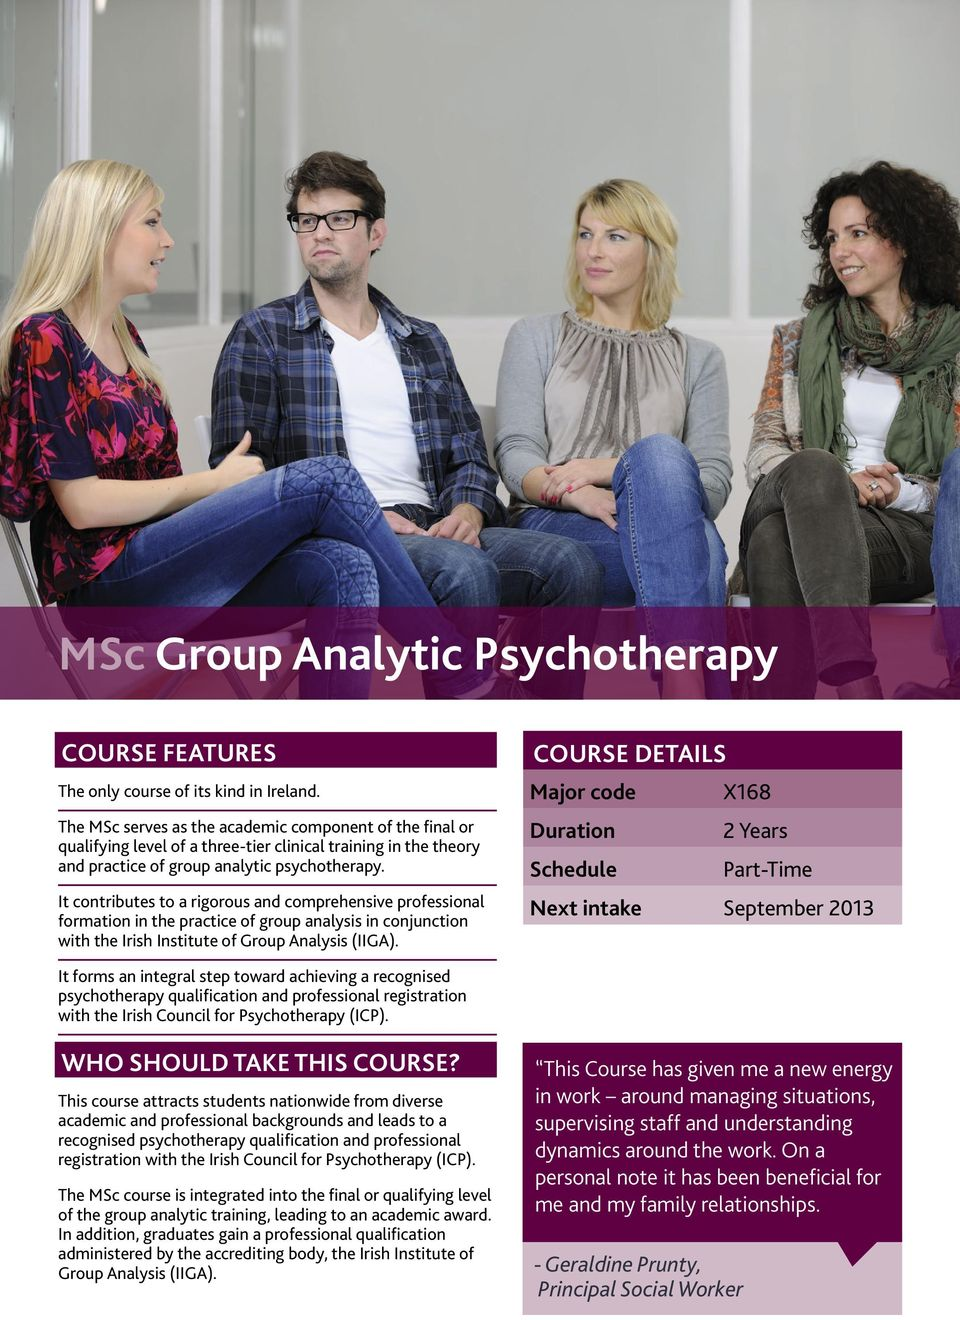 It contributes to a rigorous and comprehensive professional formation in the practice of group analysis in conjunction with the Irish Institute of Group Analysis (IIGA).